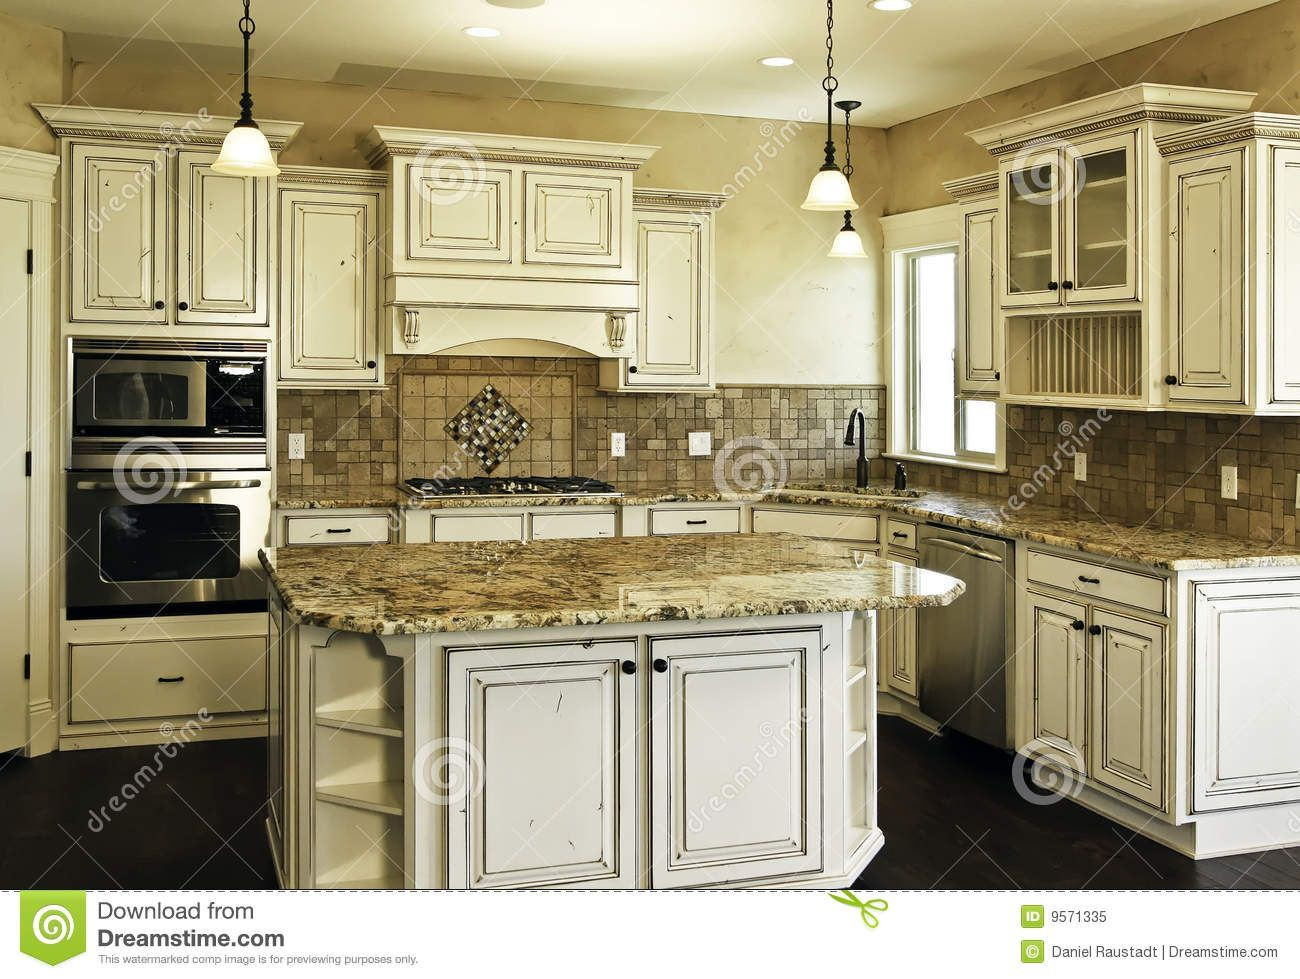 white distressed kitchen cabinets - Google Search | My dream home ...